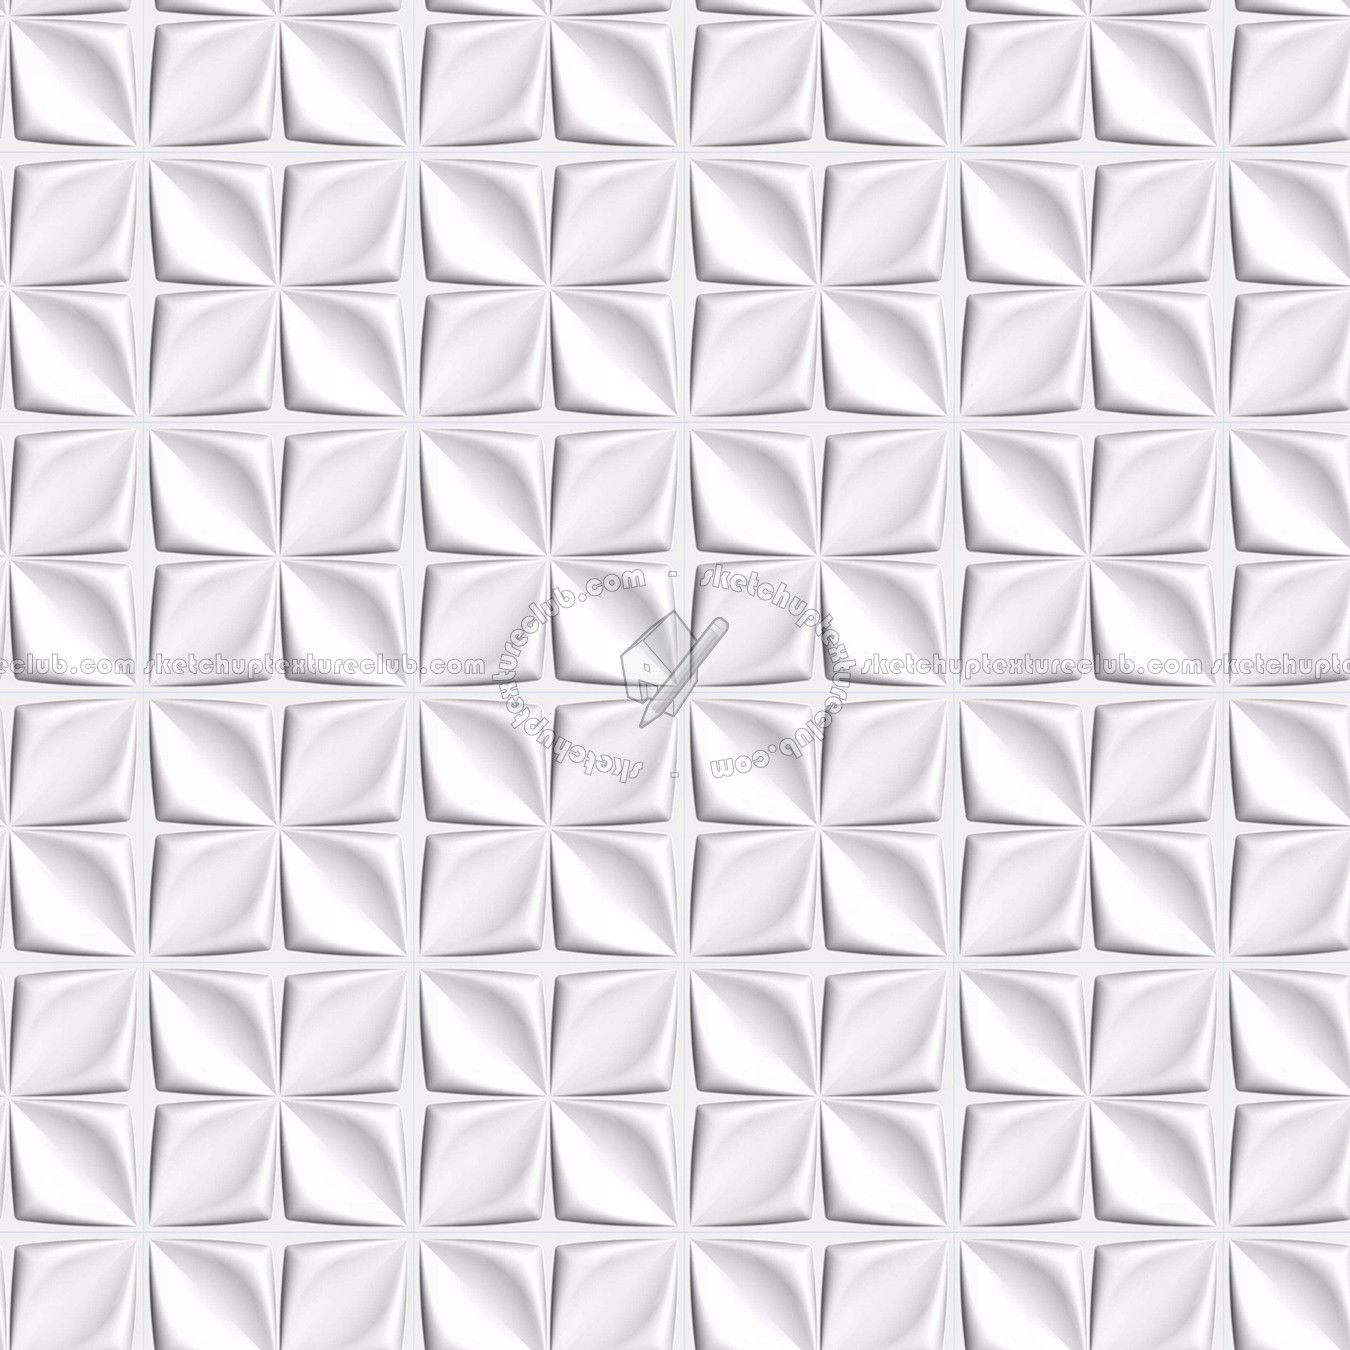 Texture Seamless White Interior 3d Wall Panel Texture